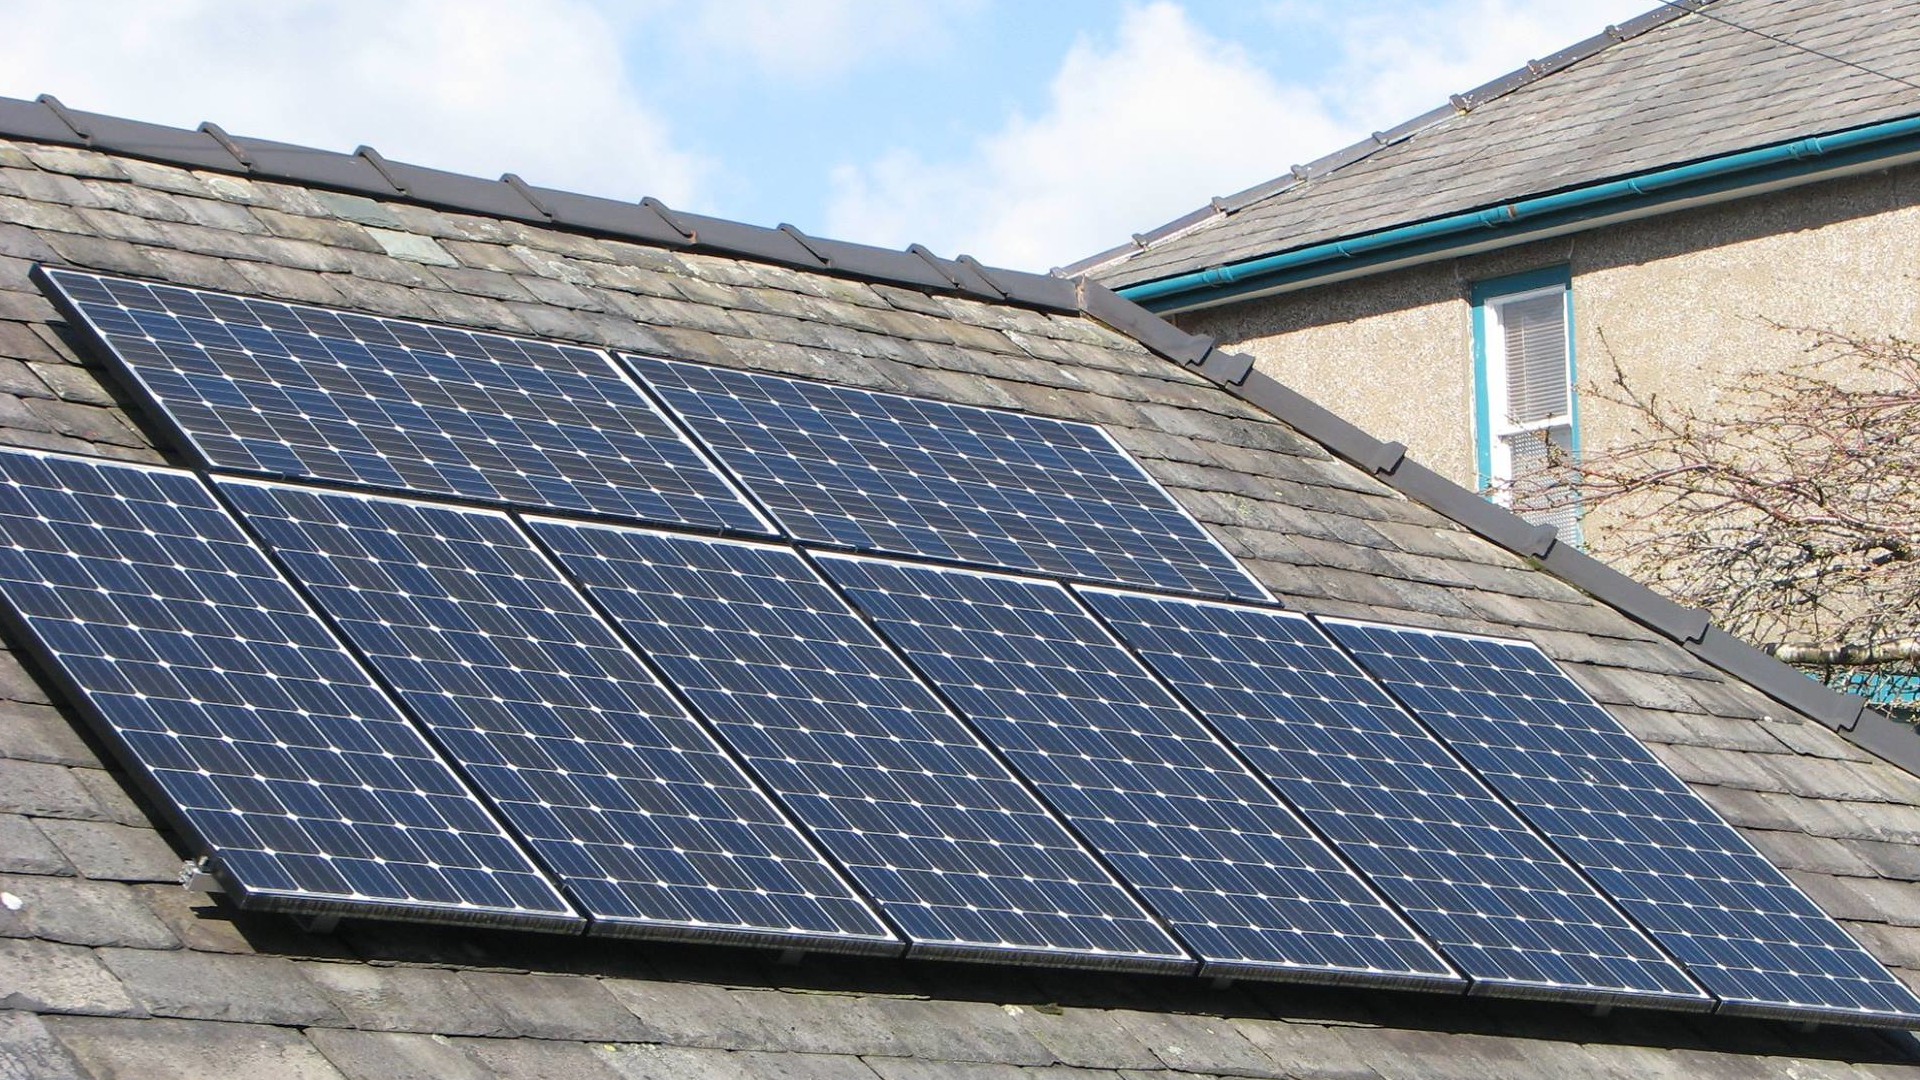 Solar panels on Cumbrian roof - 1920x1080